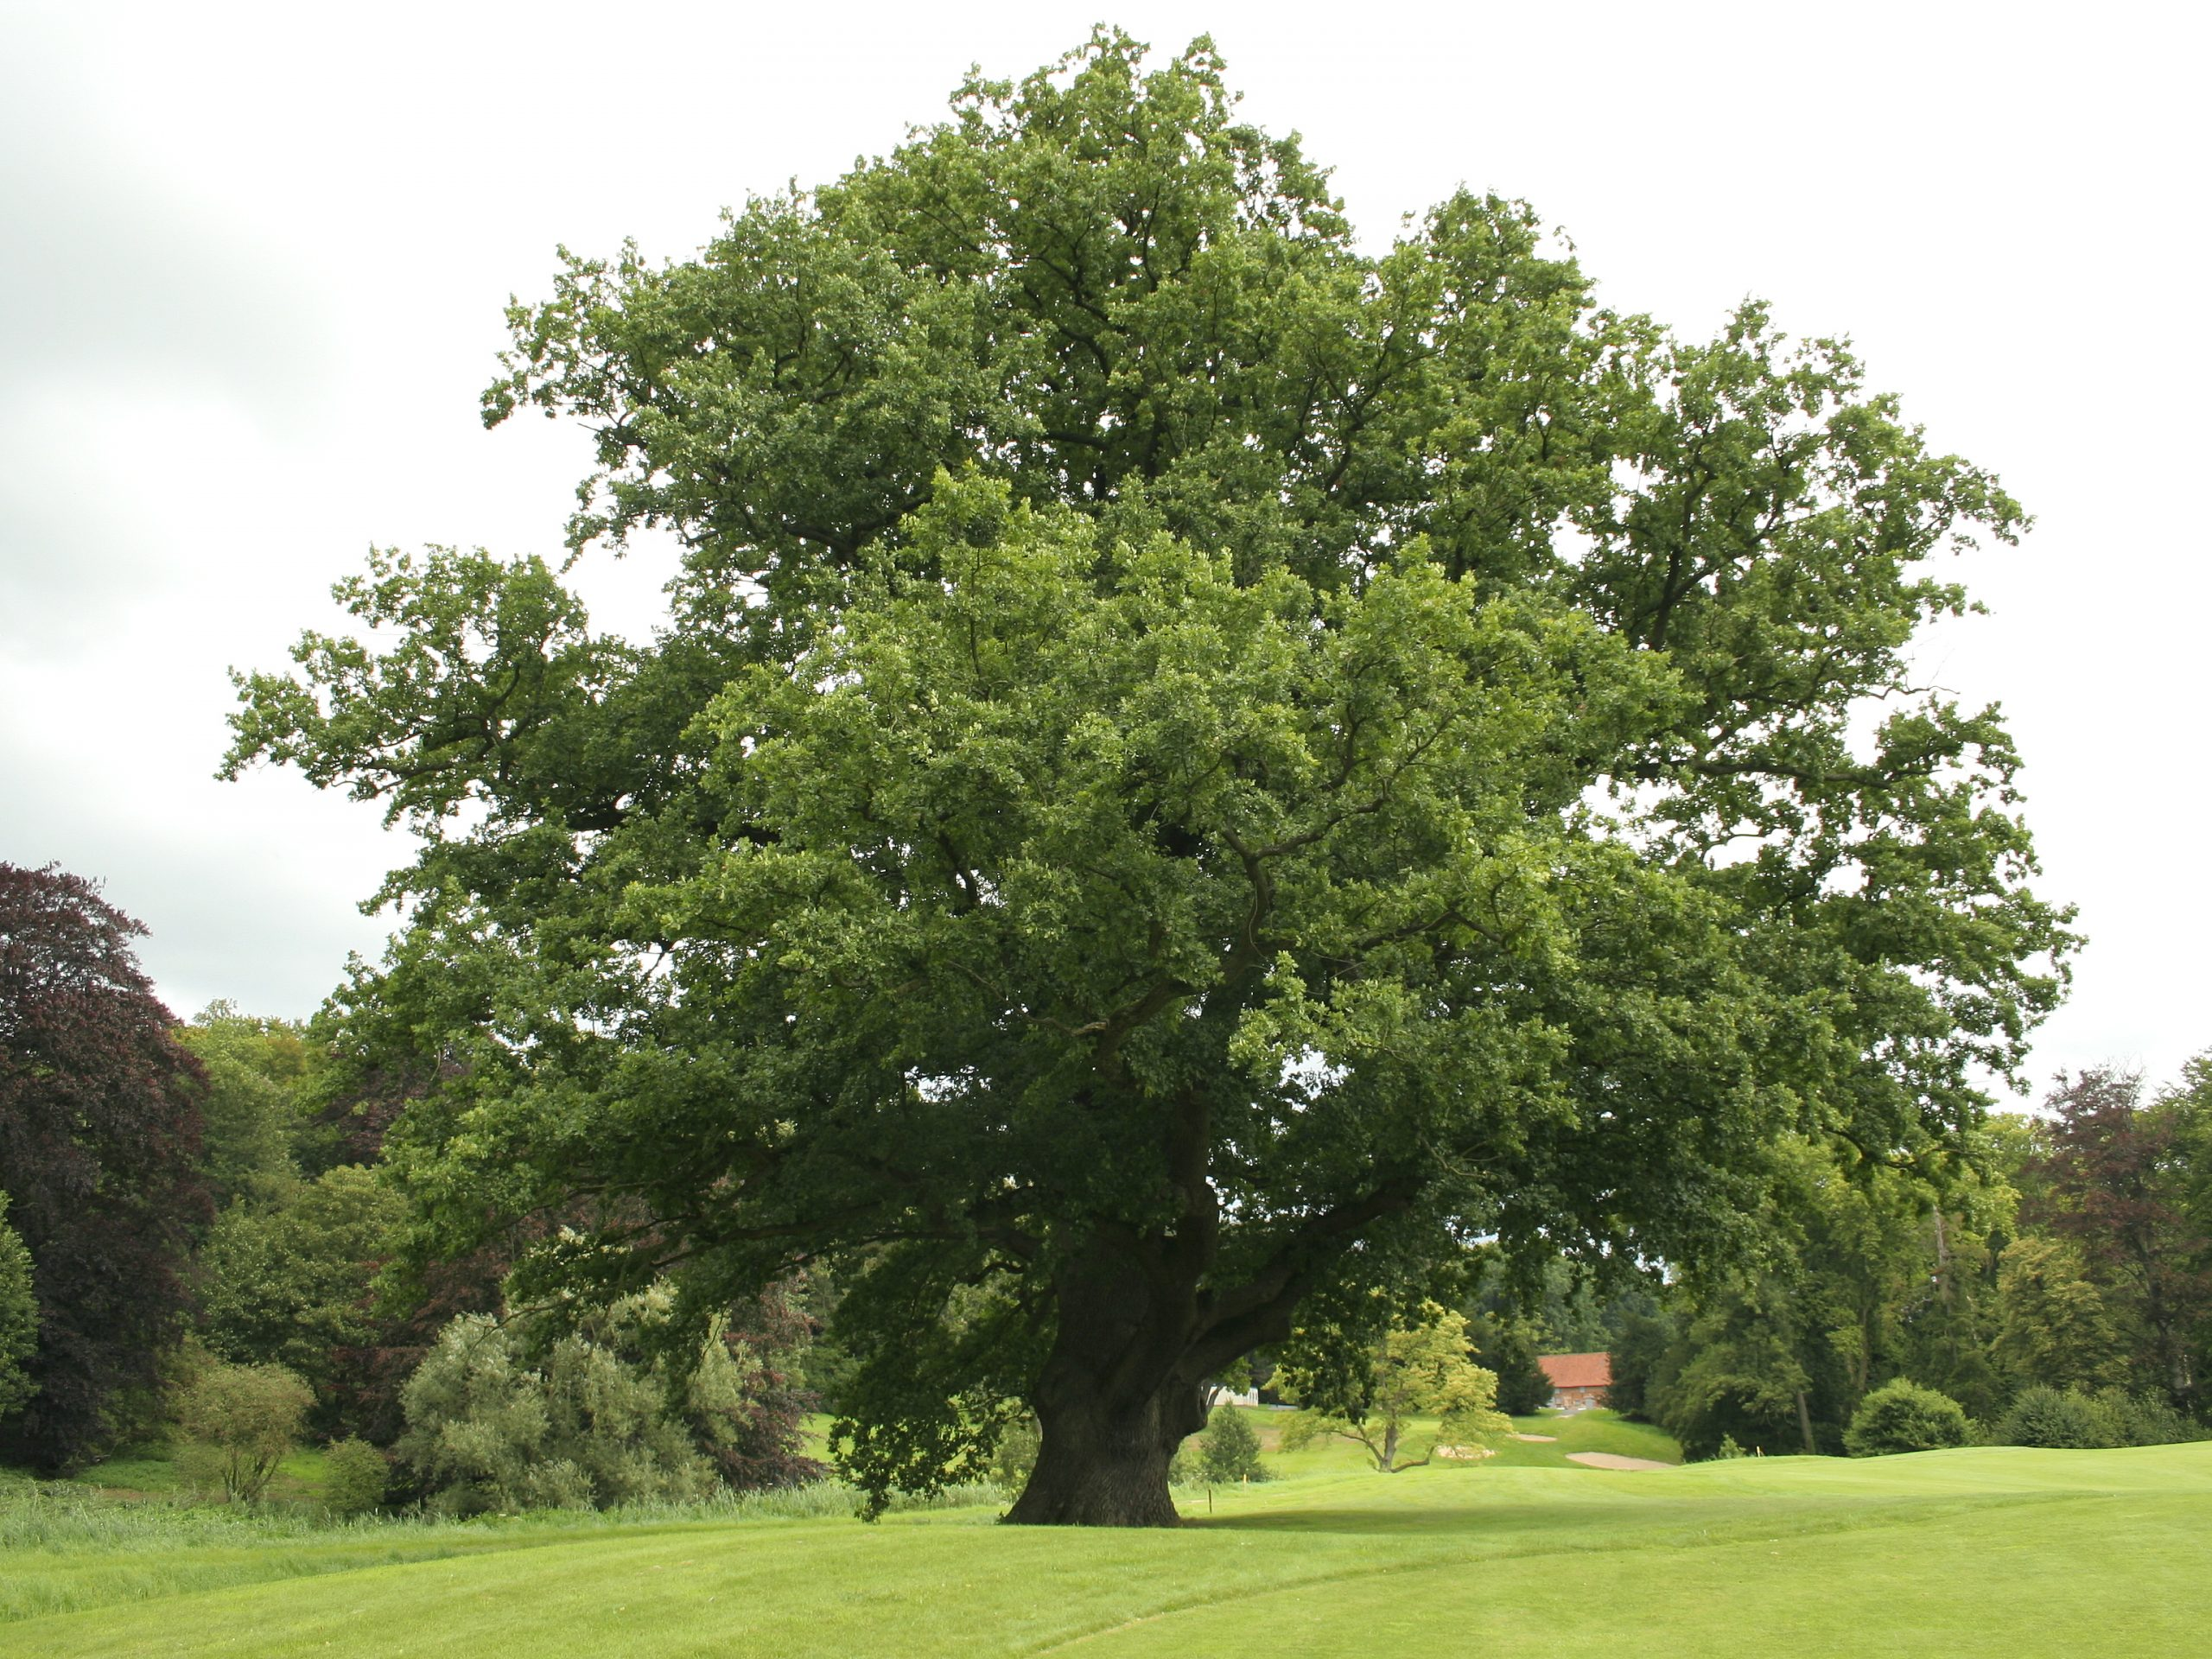 Mature English oak: Quercus robur wiki image